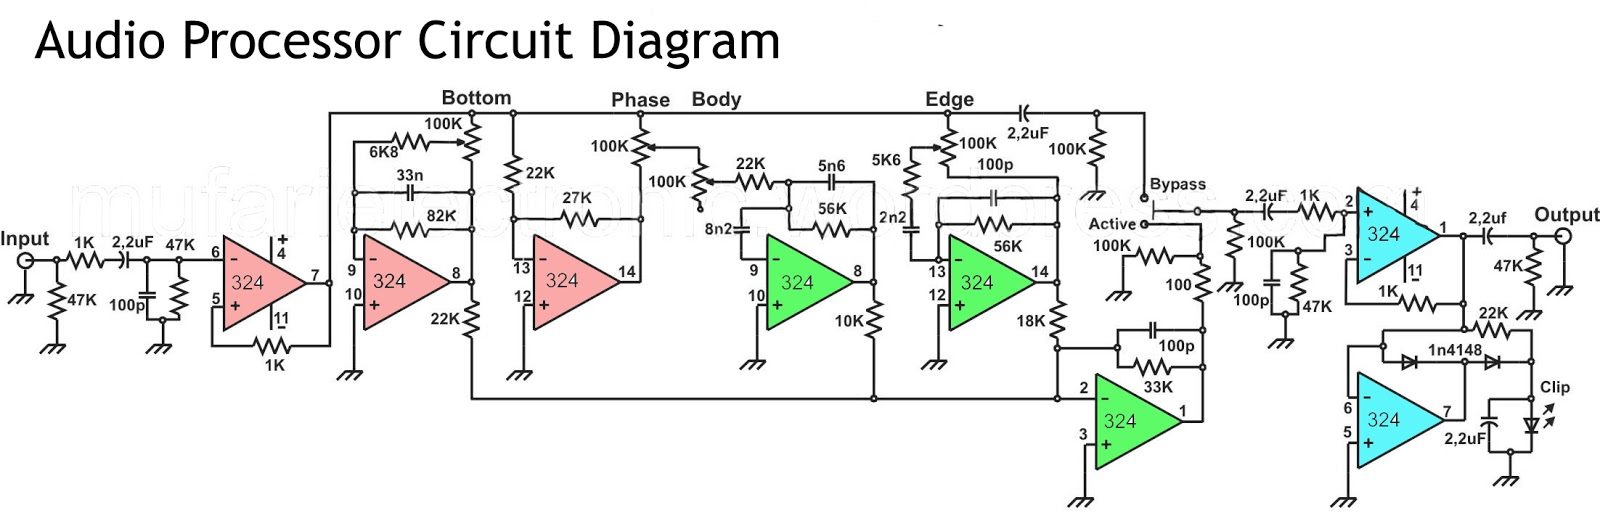 Audio Processor Circuit Using Ic Lm324 Electronic Tda2040 Car Stereo Amplifier